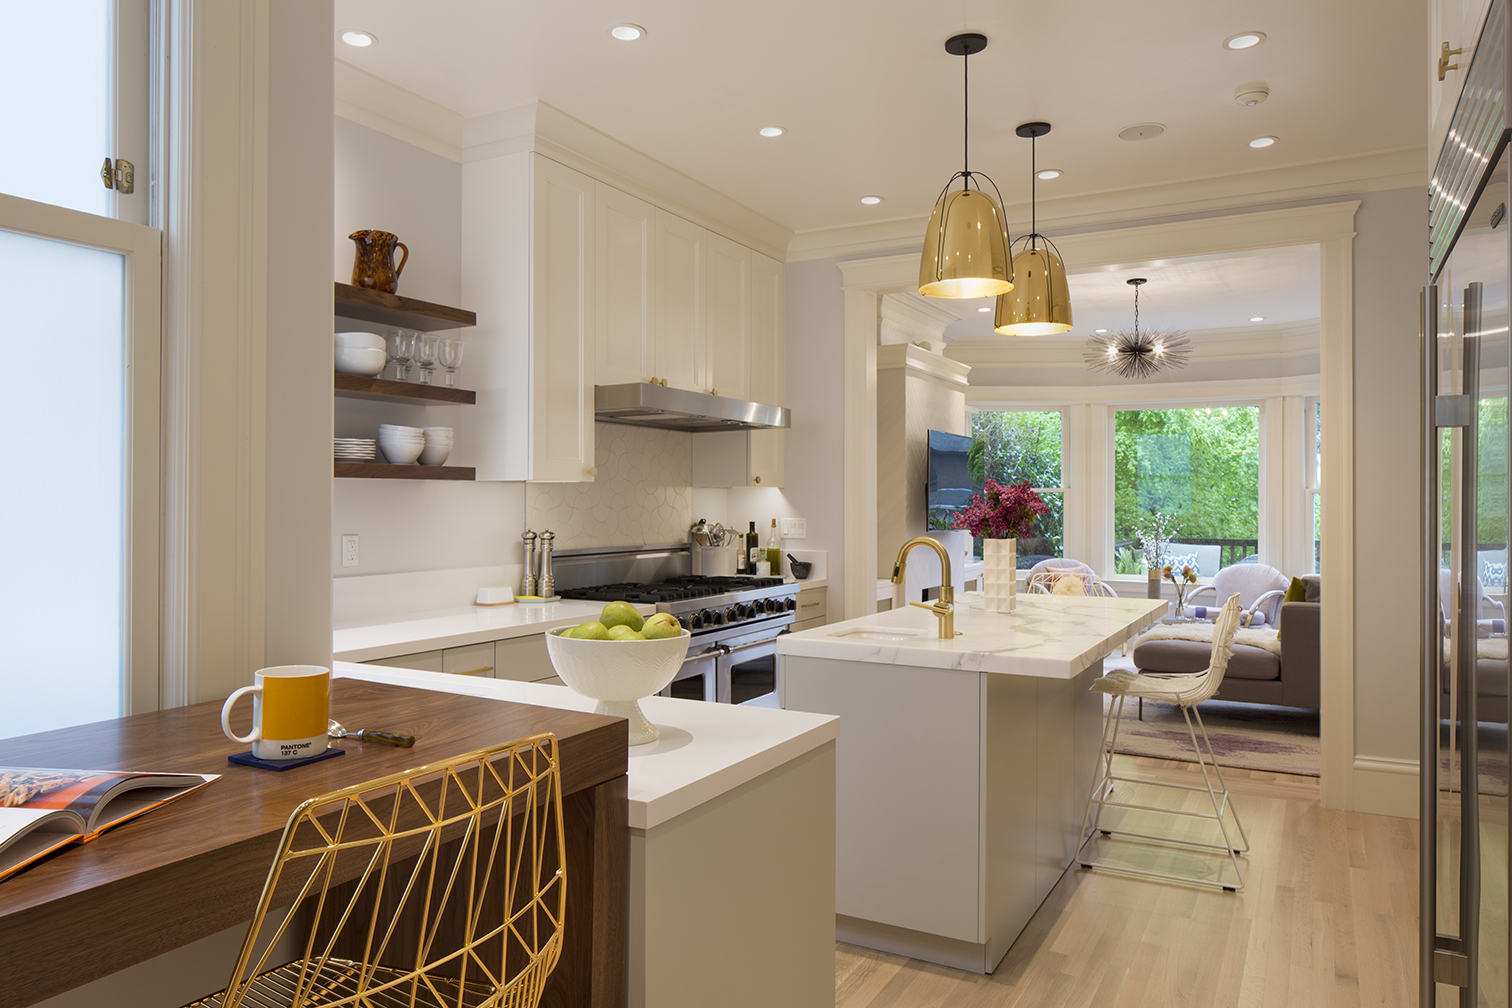 grand traditional kitchen remodel in san francisco - jeff king and